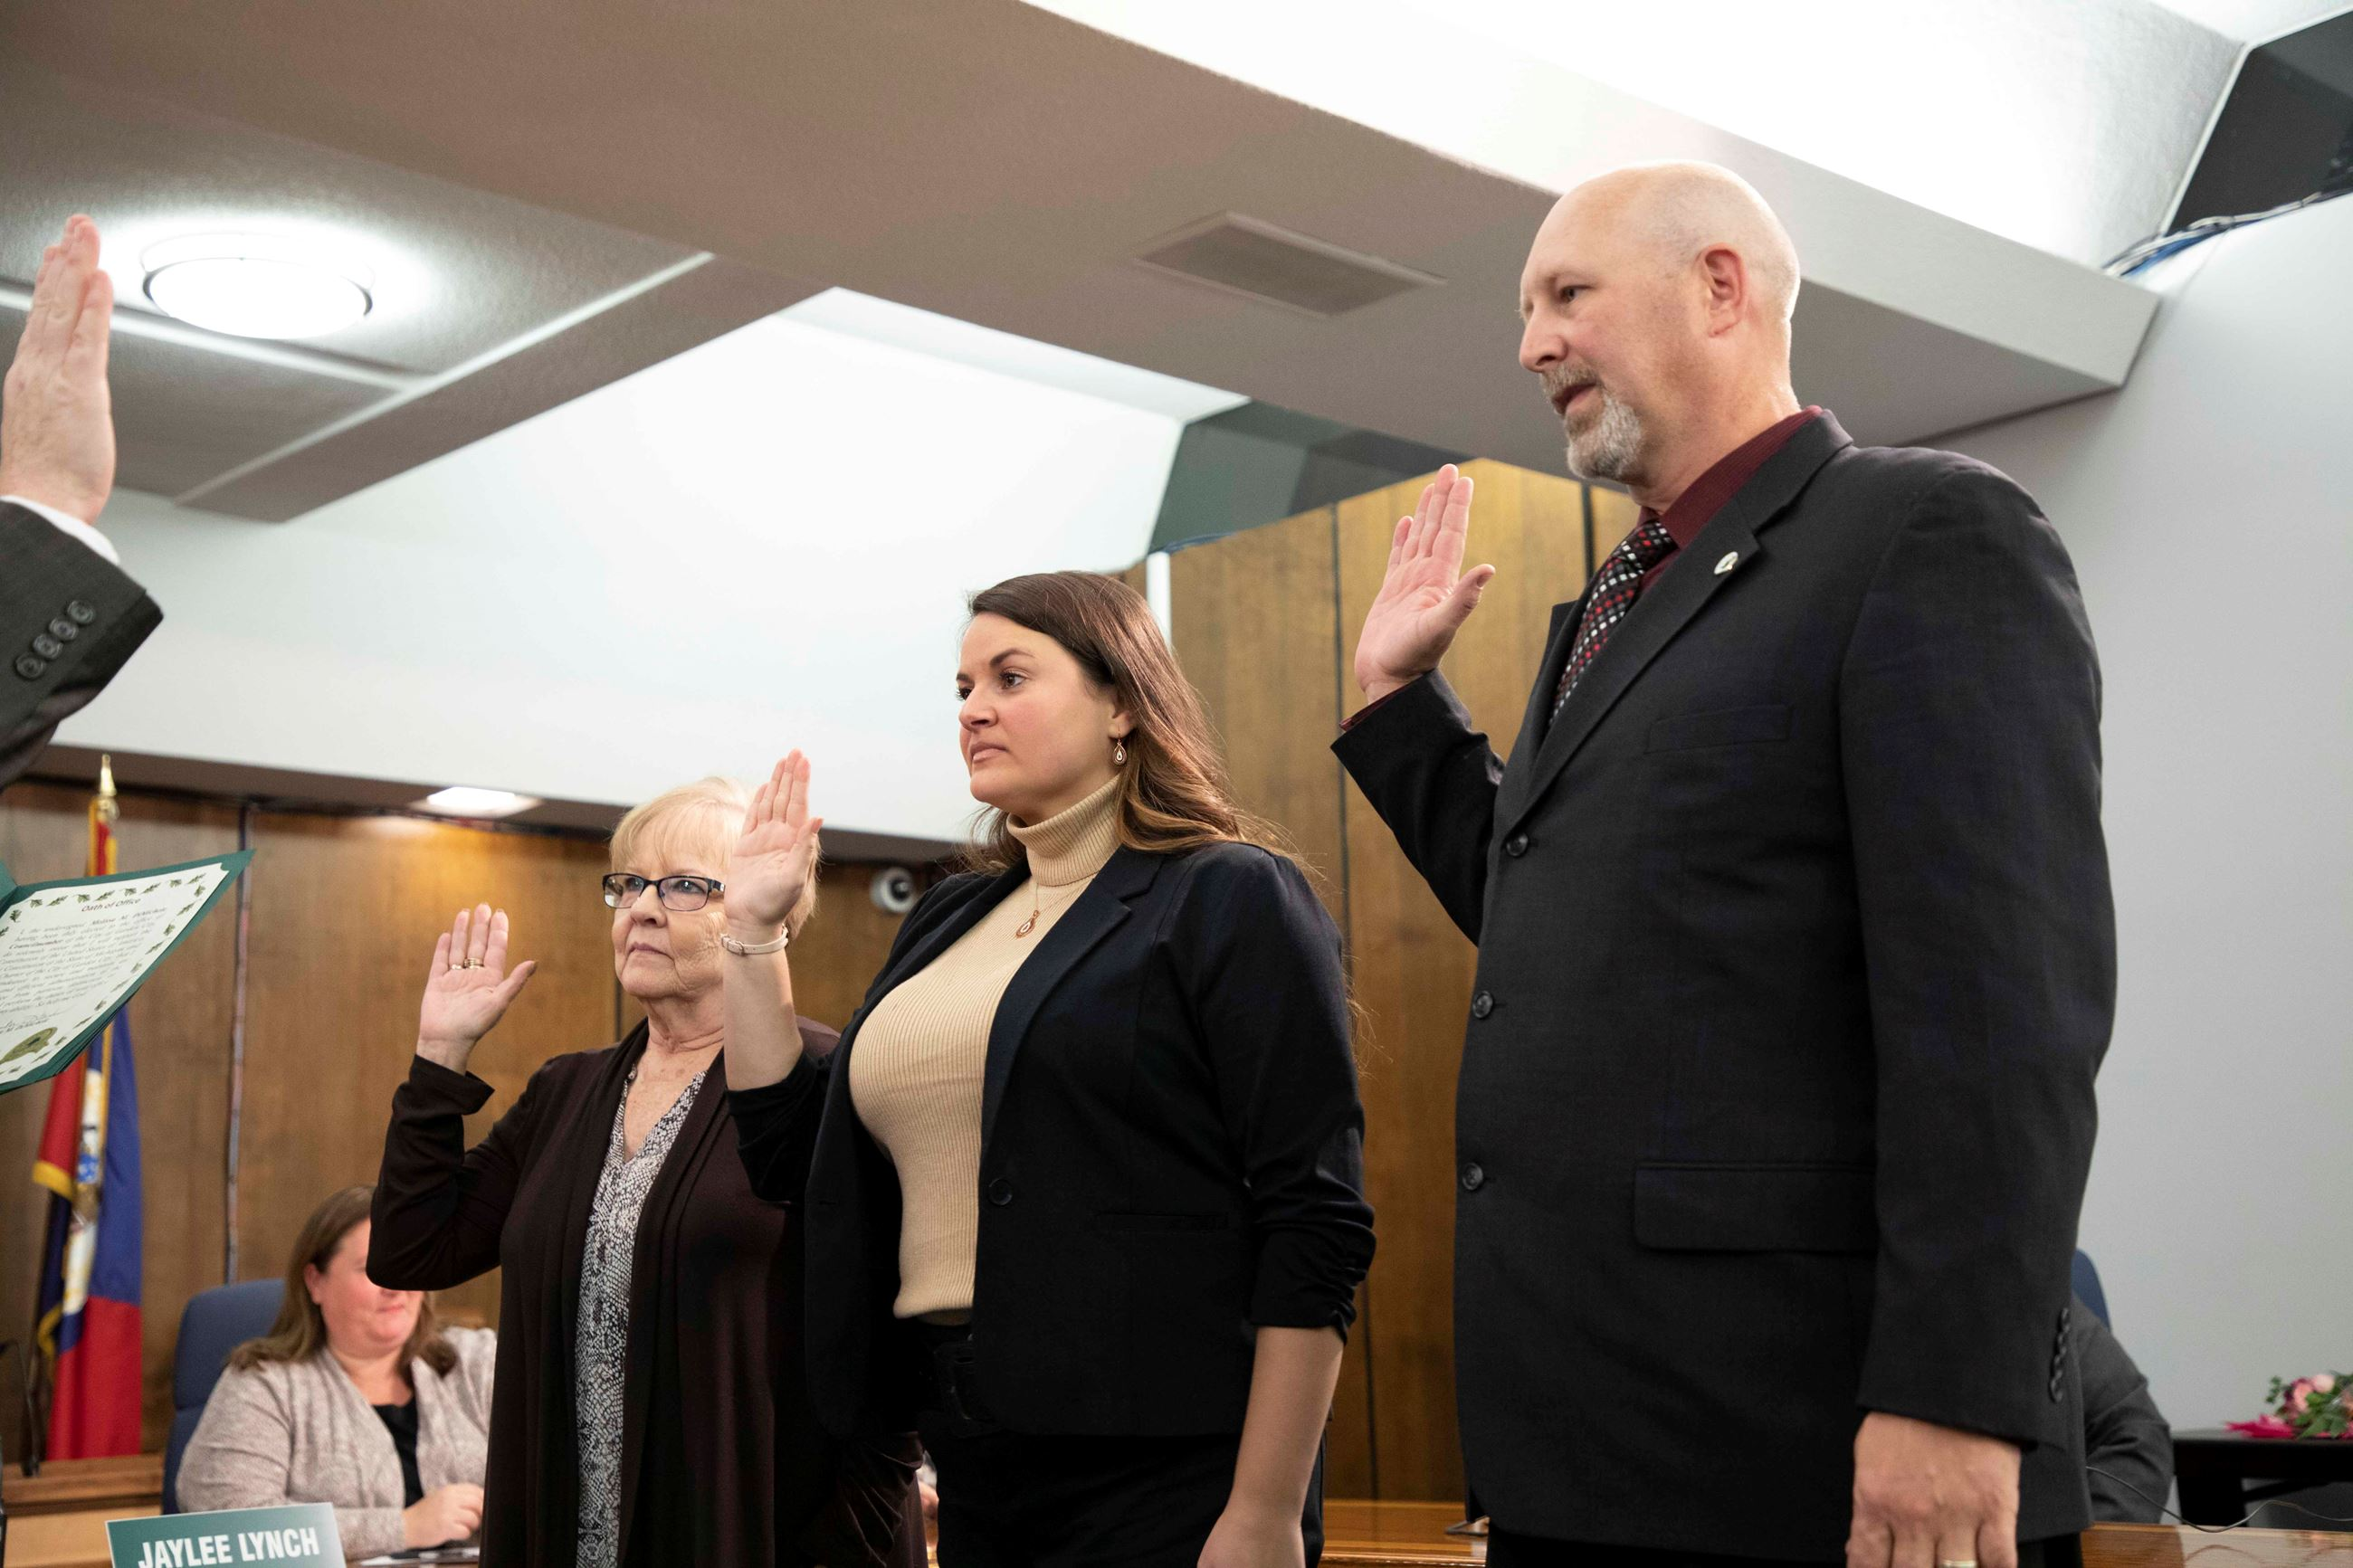 Council People Pat Squires, Melissa DiMichele and Brian Earle sworn in